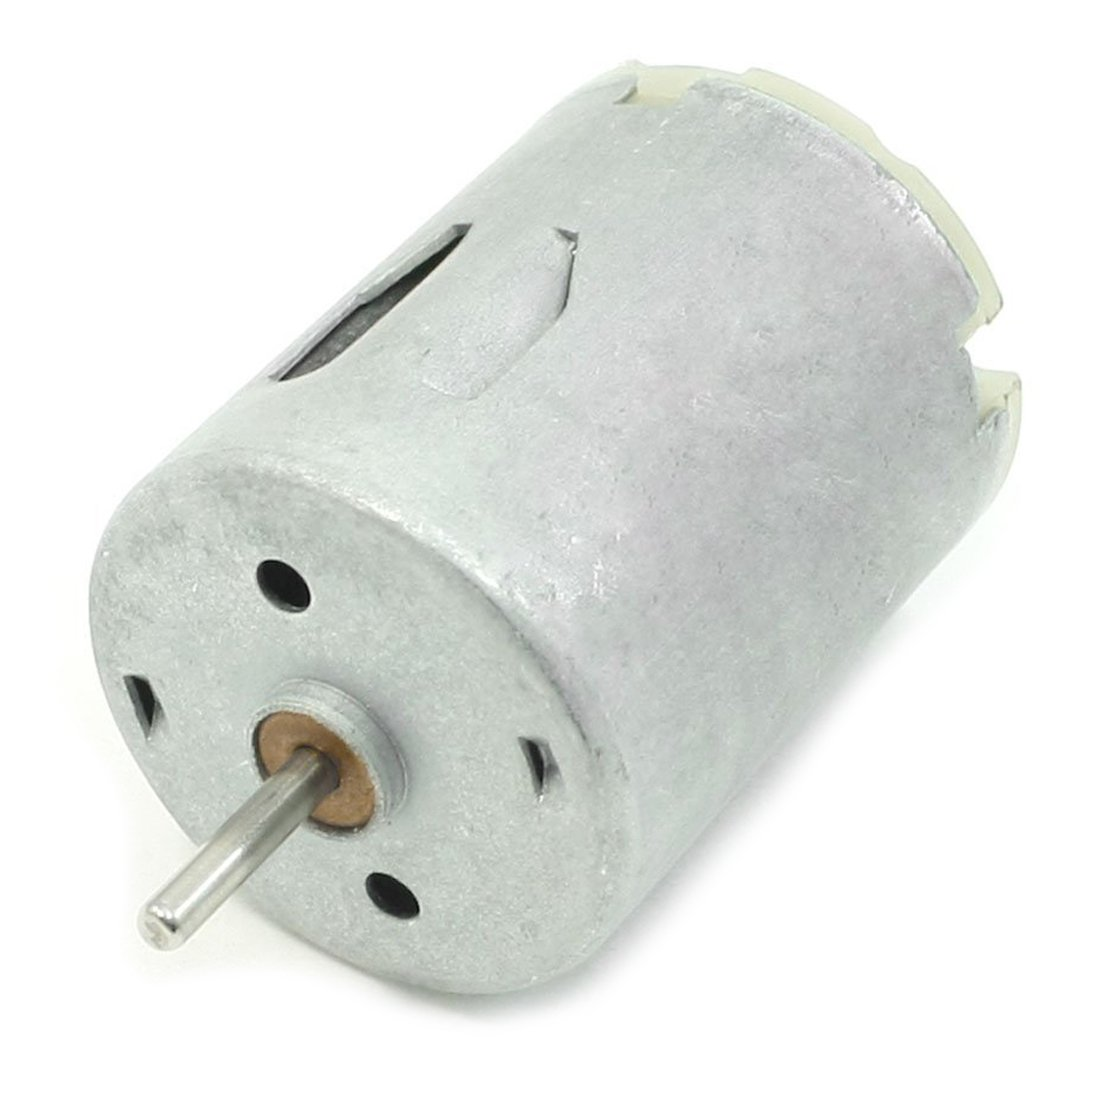 20000 RPM DC Motor - SODIAL(R)DC 9V 20000RPM Rotary Speed Cylinder Shape Magnetic Motor, Silver Gray SODIAL (R)